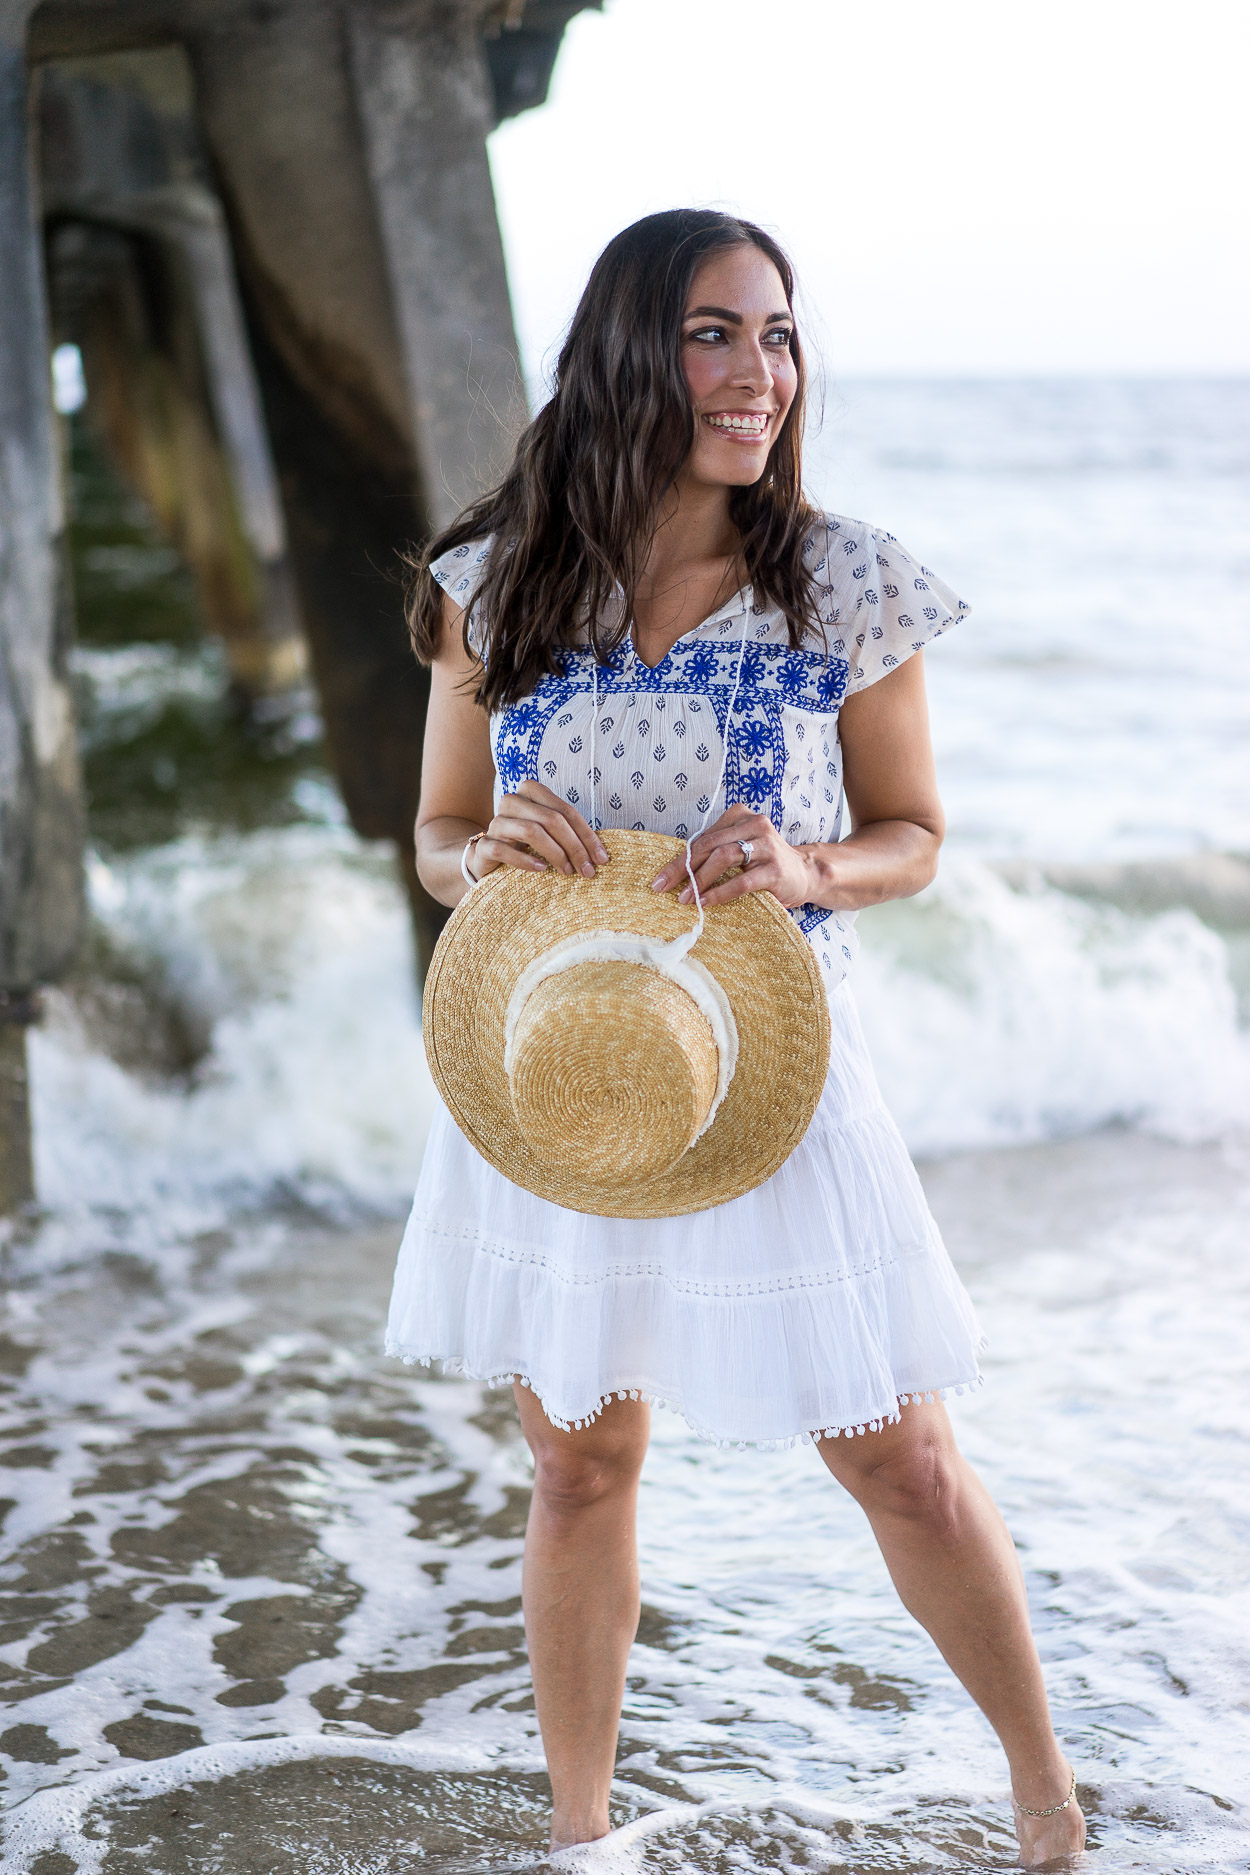 Old Navy Summer favorites picked by Amanda of A Glam Lifestyle blog in Old Navy top and skirt with straw boater hat